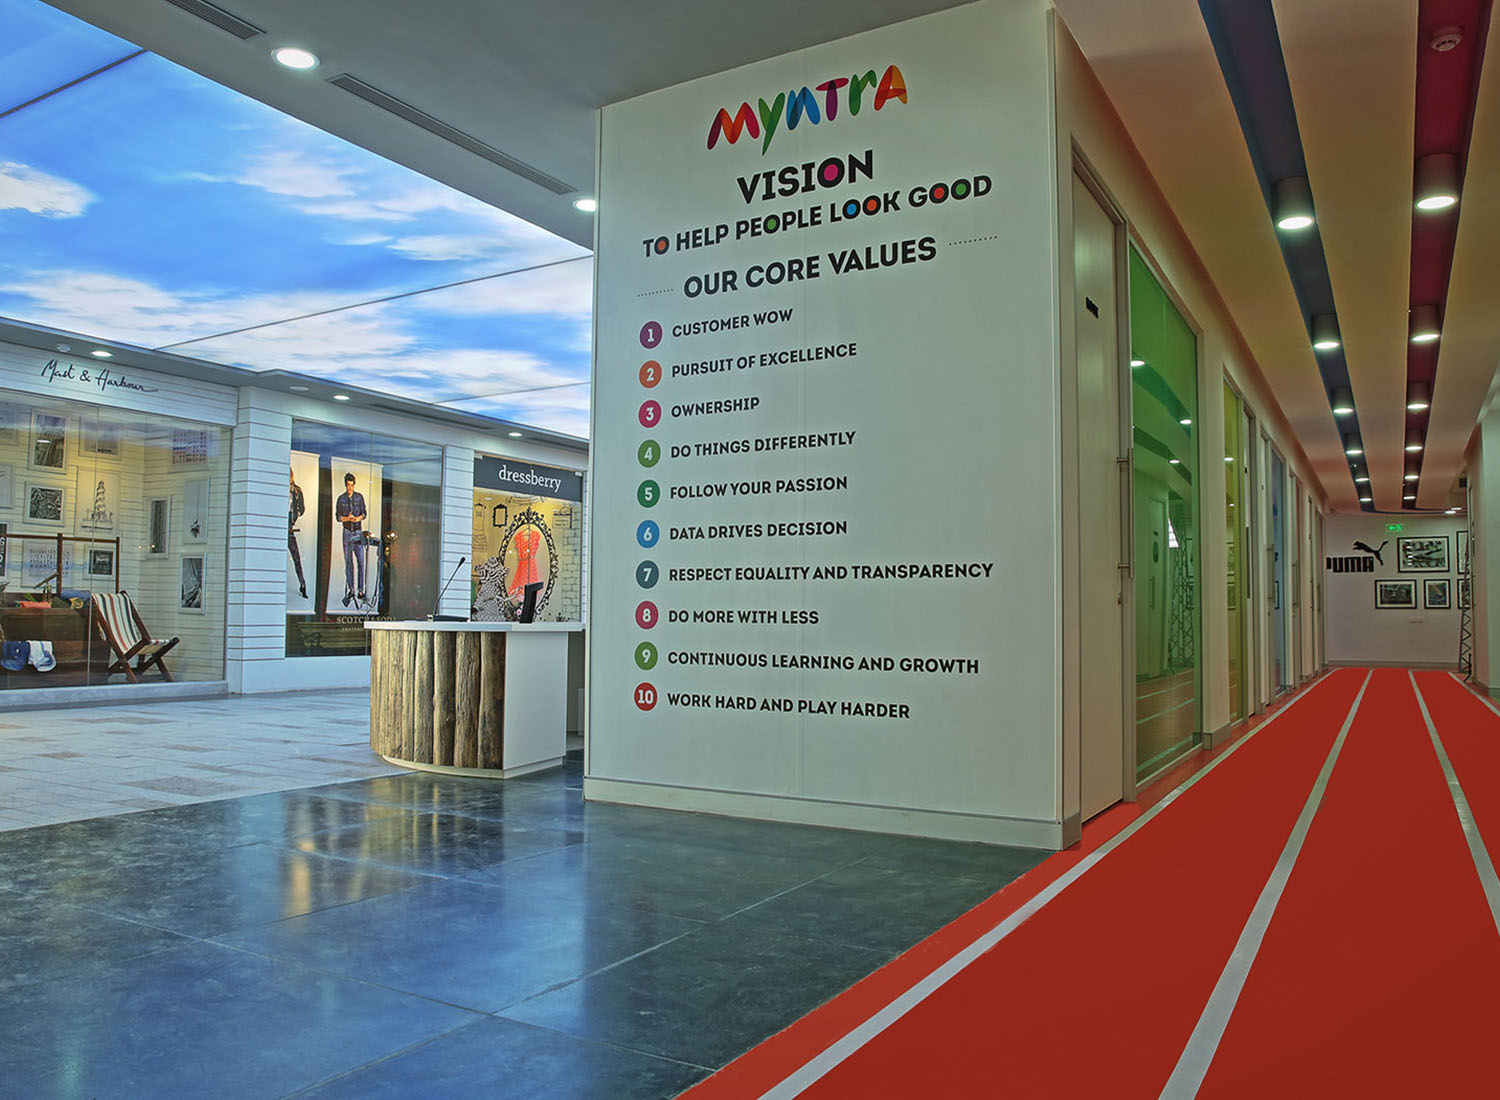 Myntra - Stretch Ceiling Printed Translucent with Backlighting in Corporate - Corporate - Bangalore